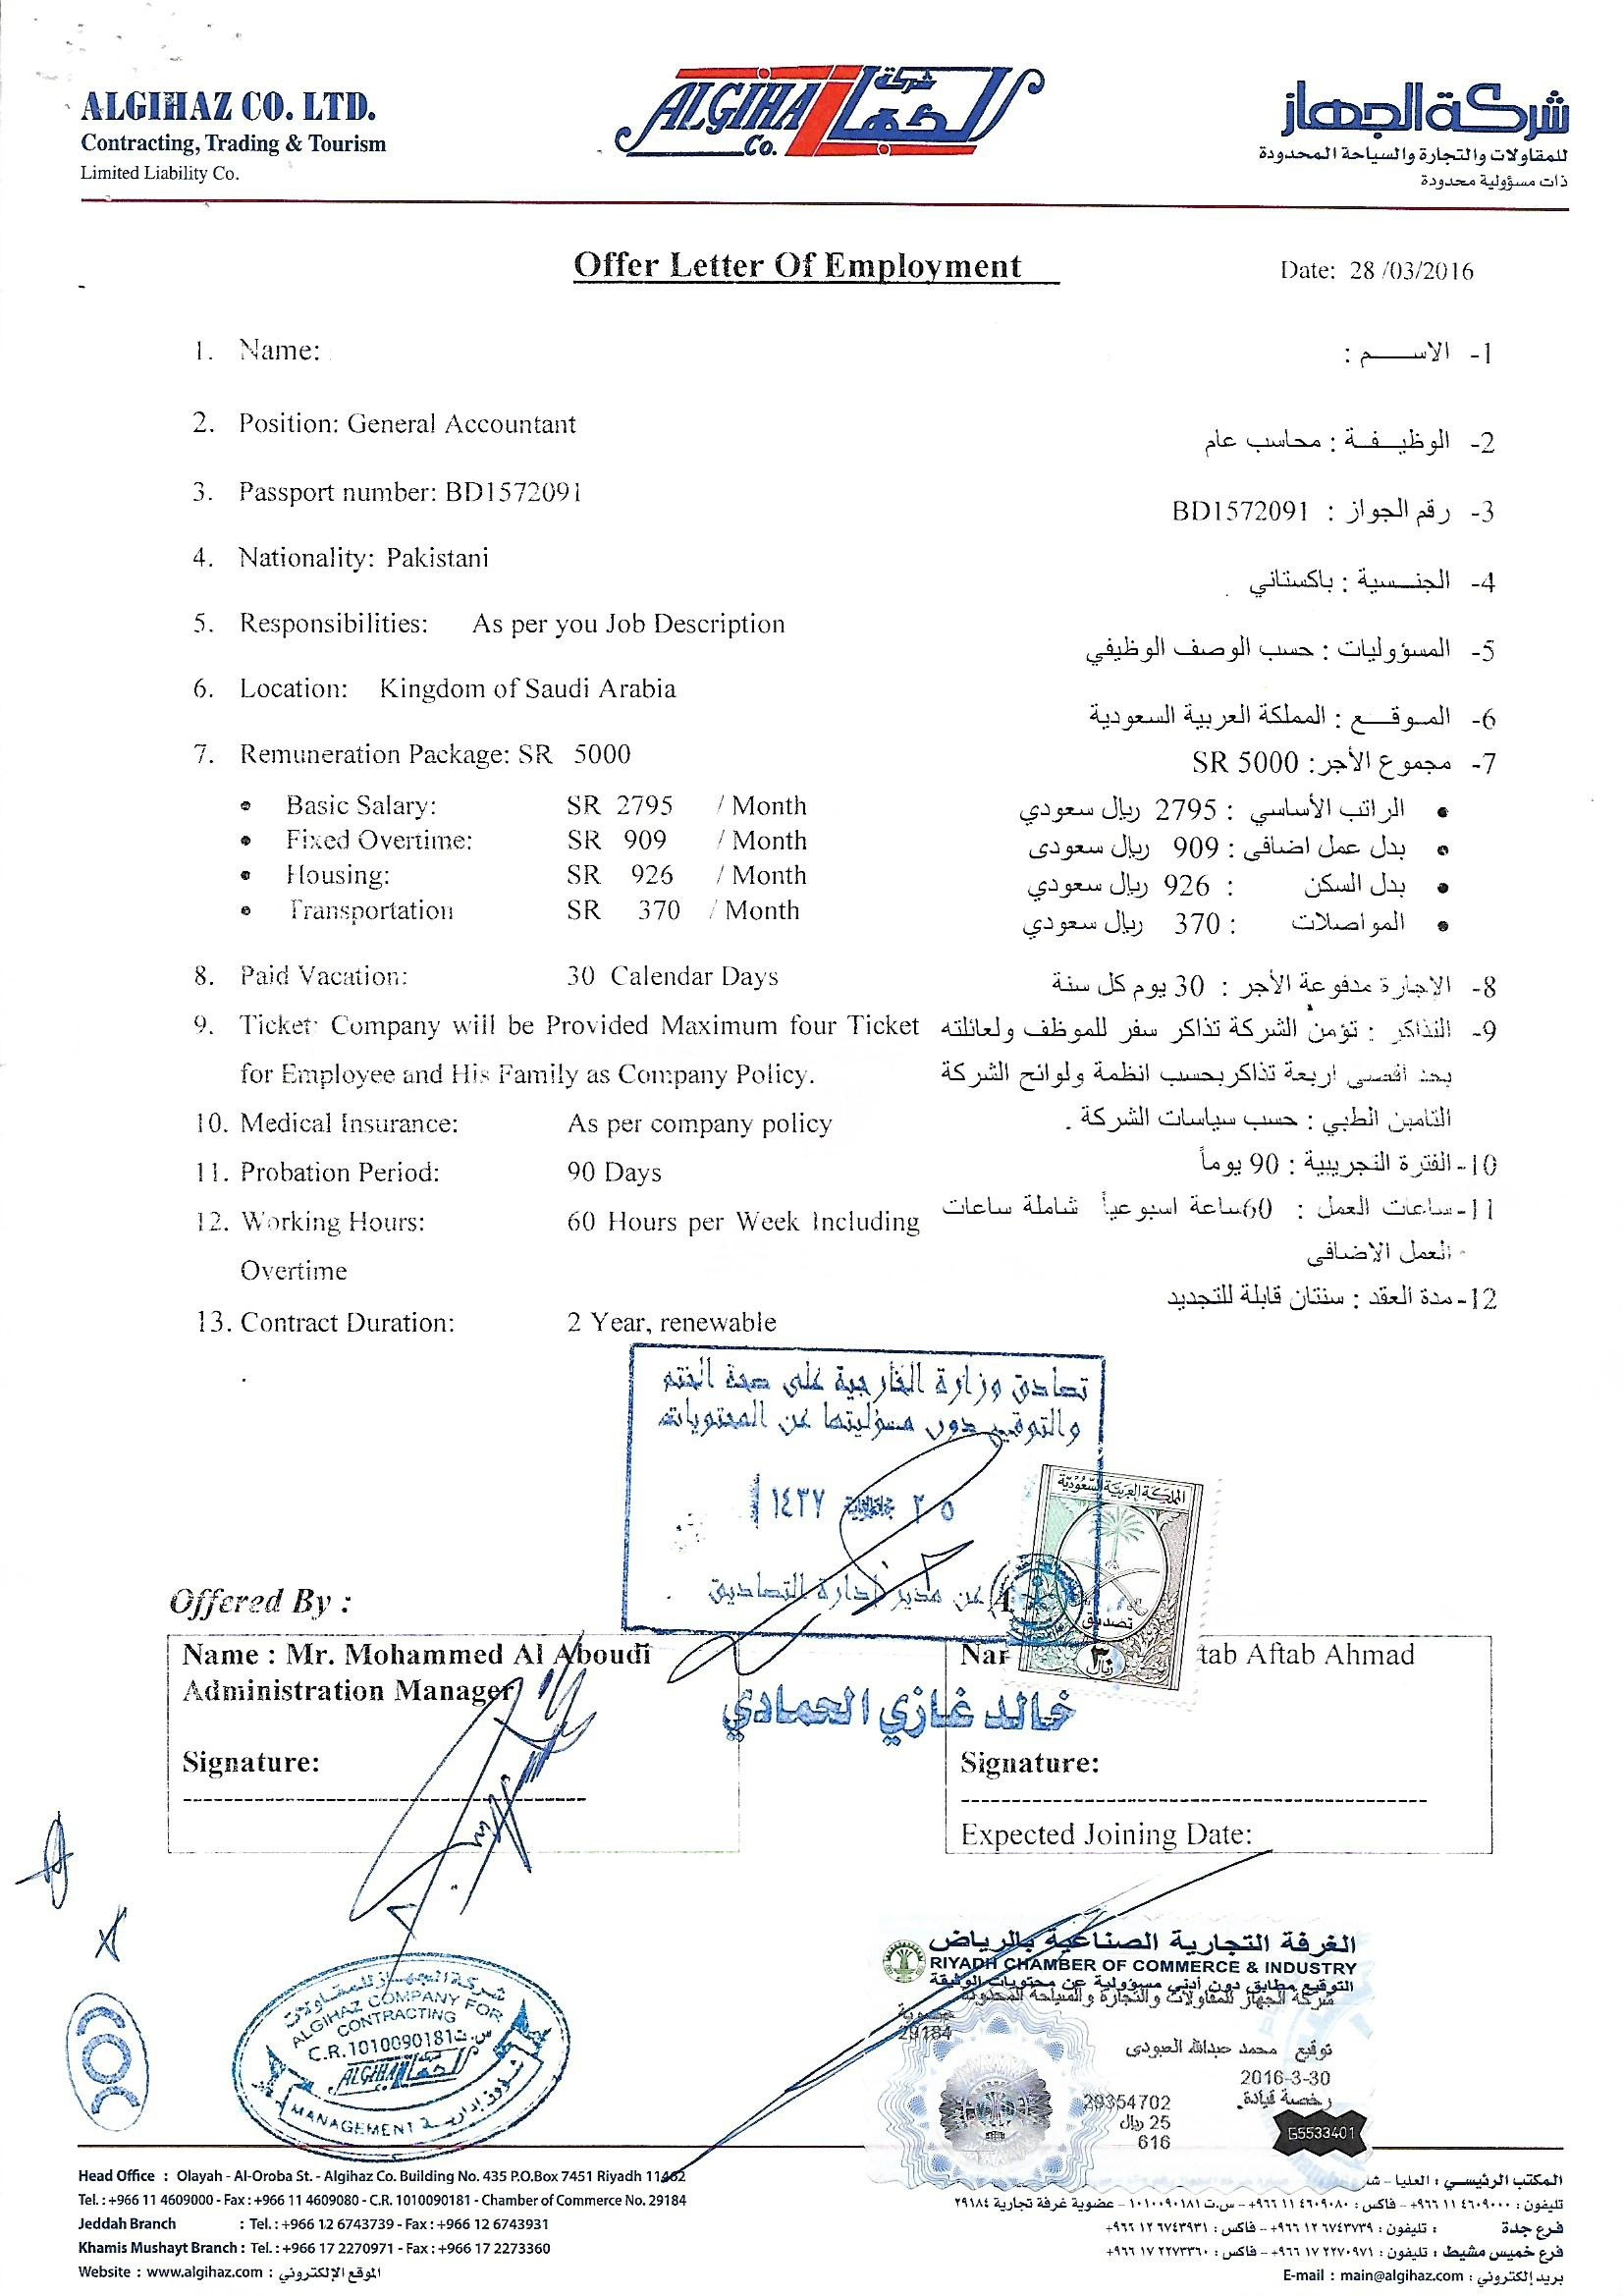 Document degree attestation from saudi embassy ksa embassy contract letteroffer letter should not be older than one year date should be mentioned on contract letter hand written contract will not be accepted altavistaventures Image collections